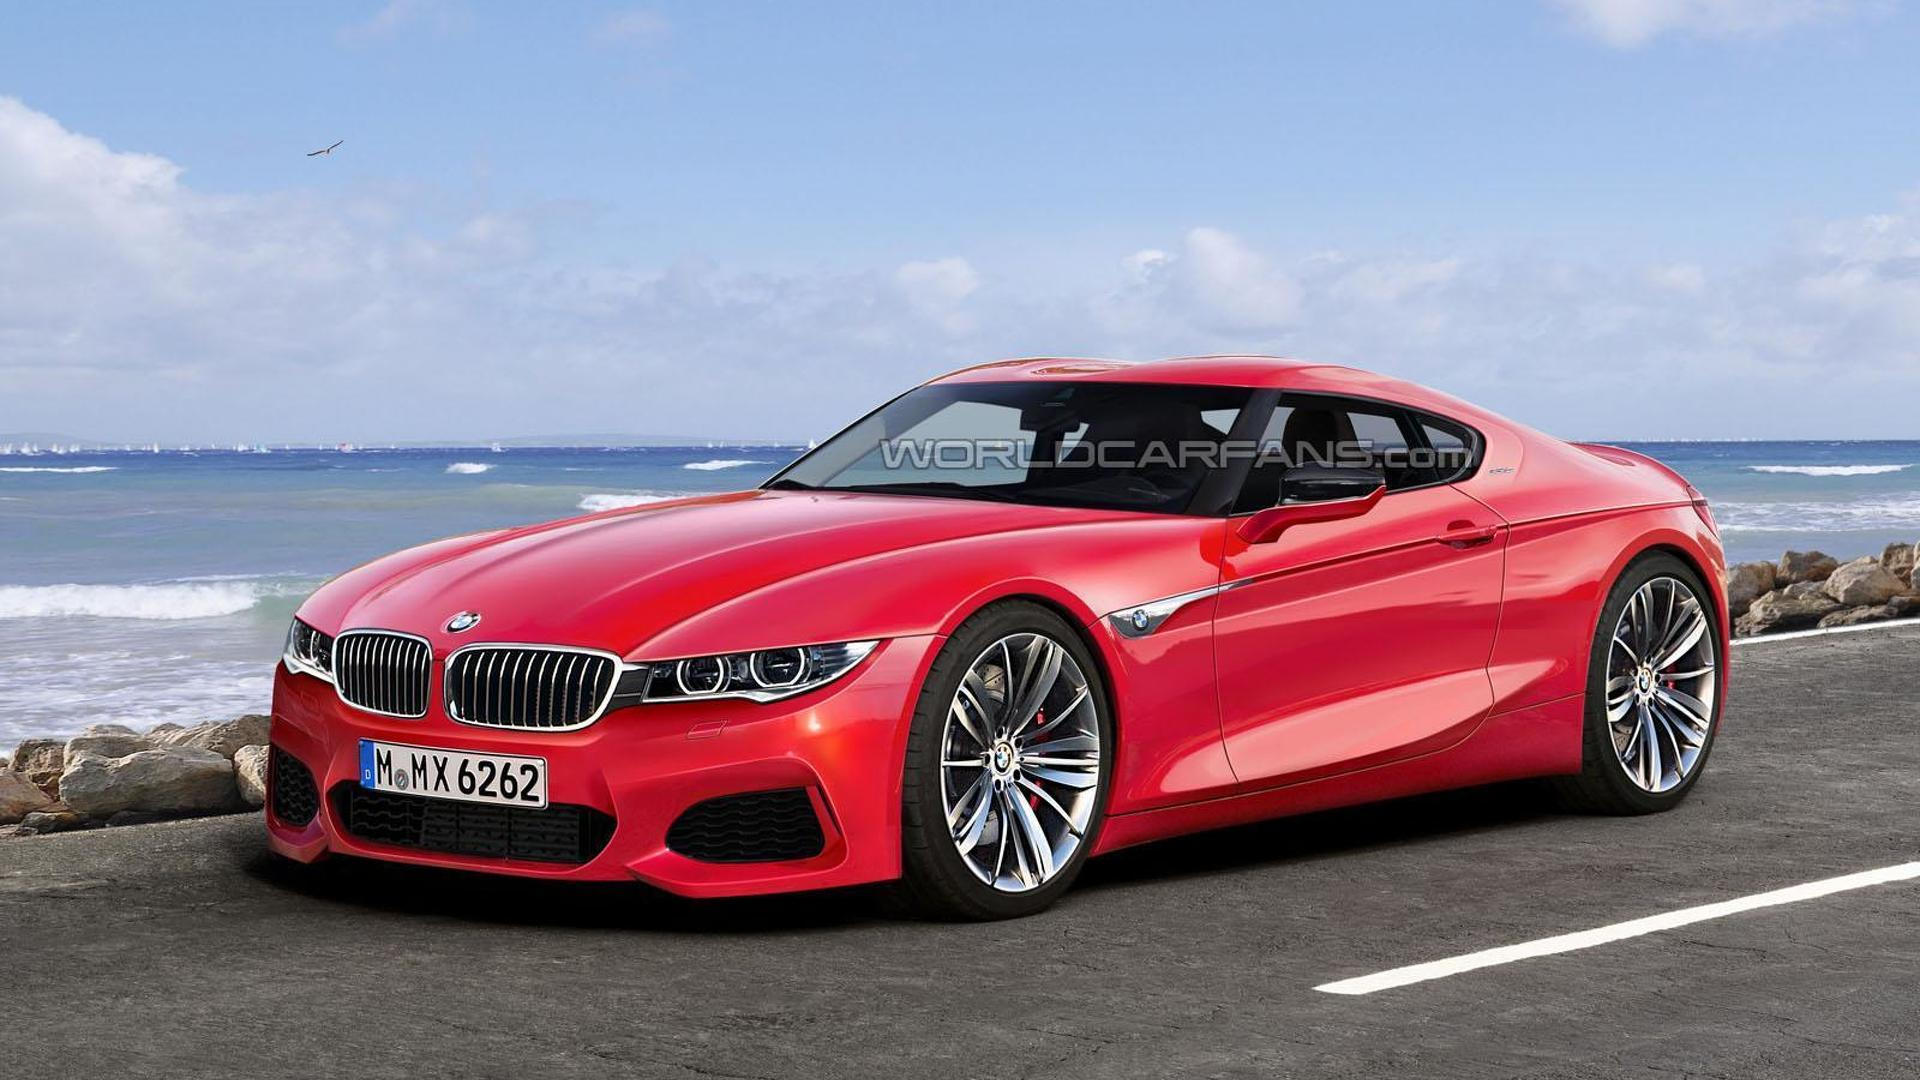 BMW Toyota Sports Car Moves To The Concept Phase, Model Still On Schedule Amazing Design